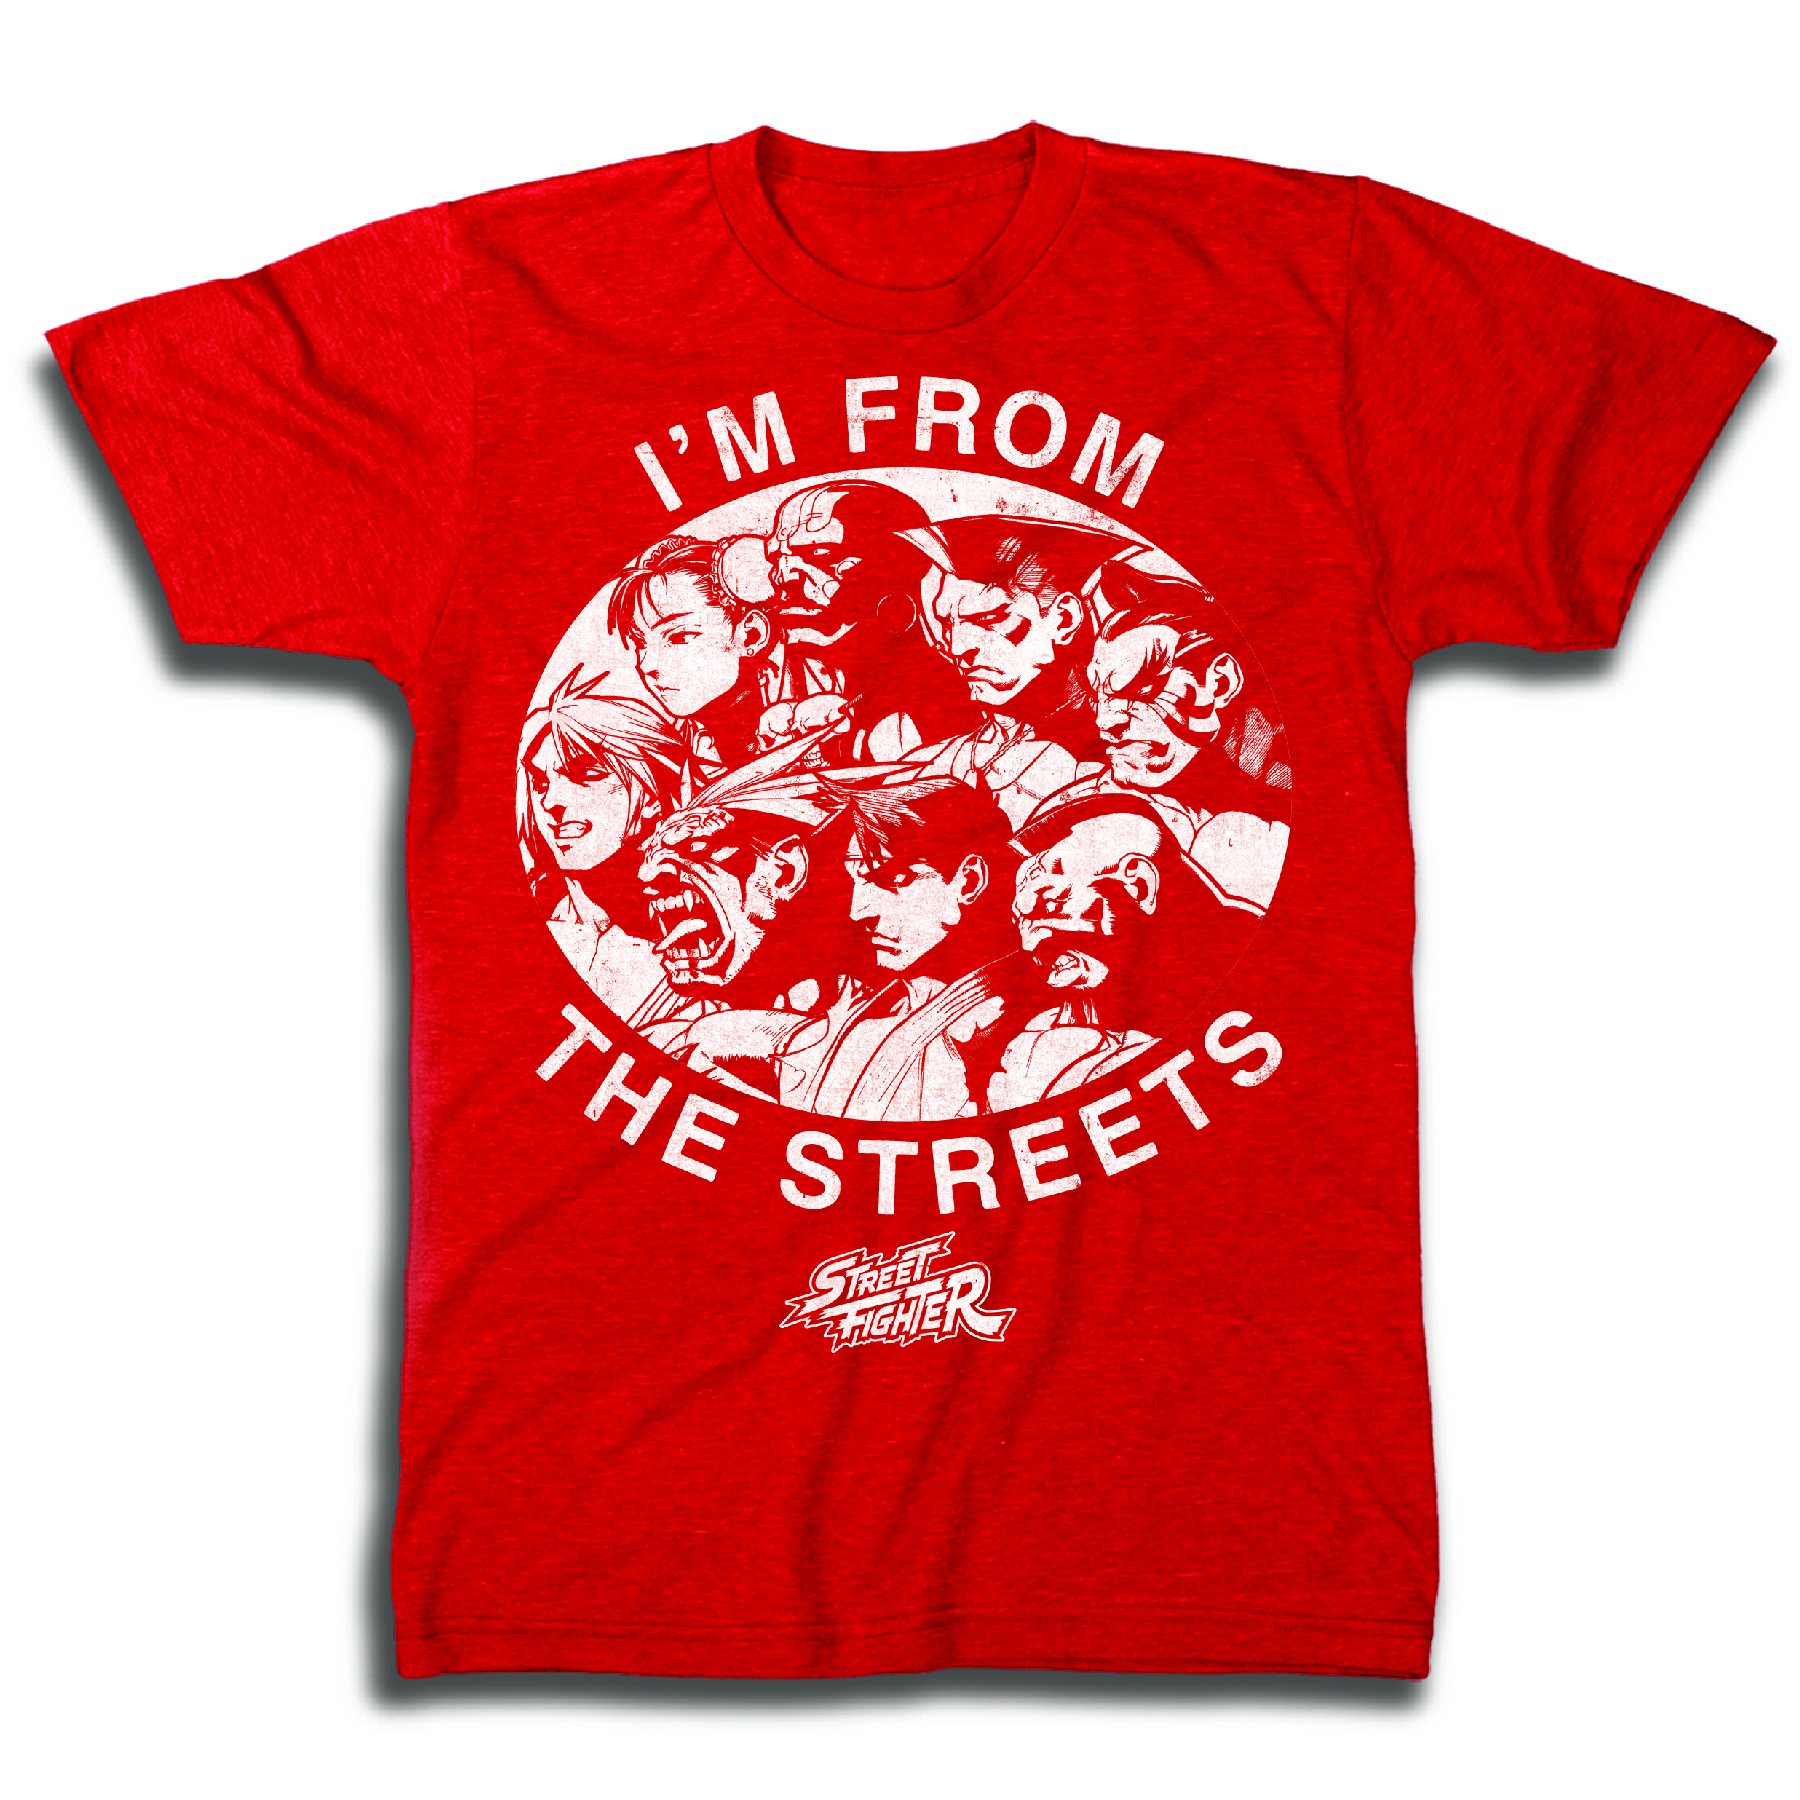 STREET FIGHTER THE STREETS PX RED T/S XXL